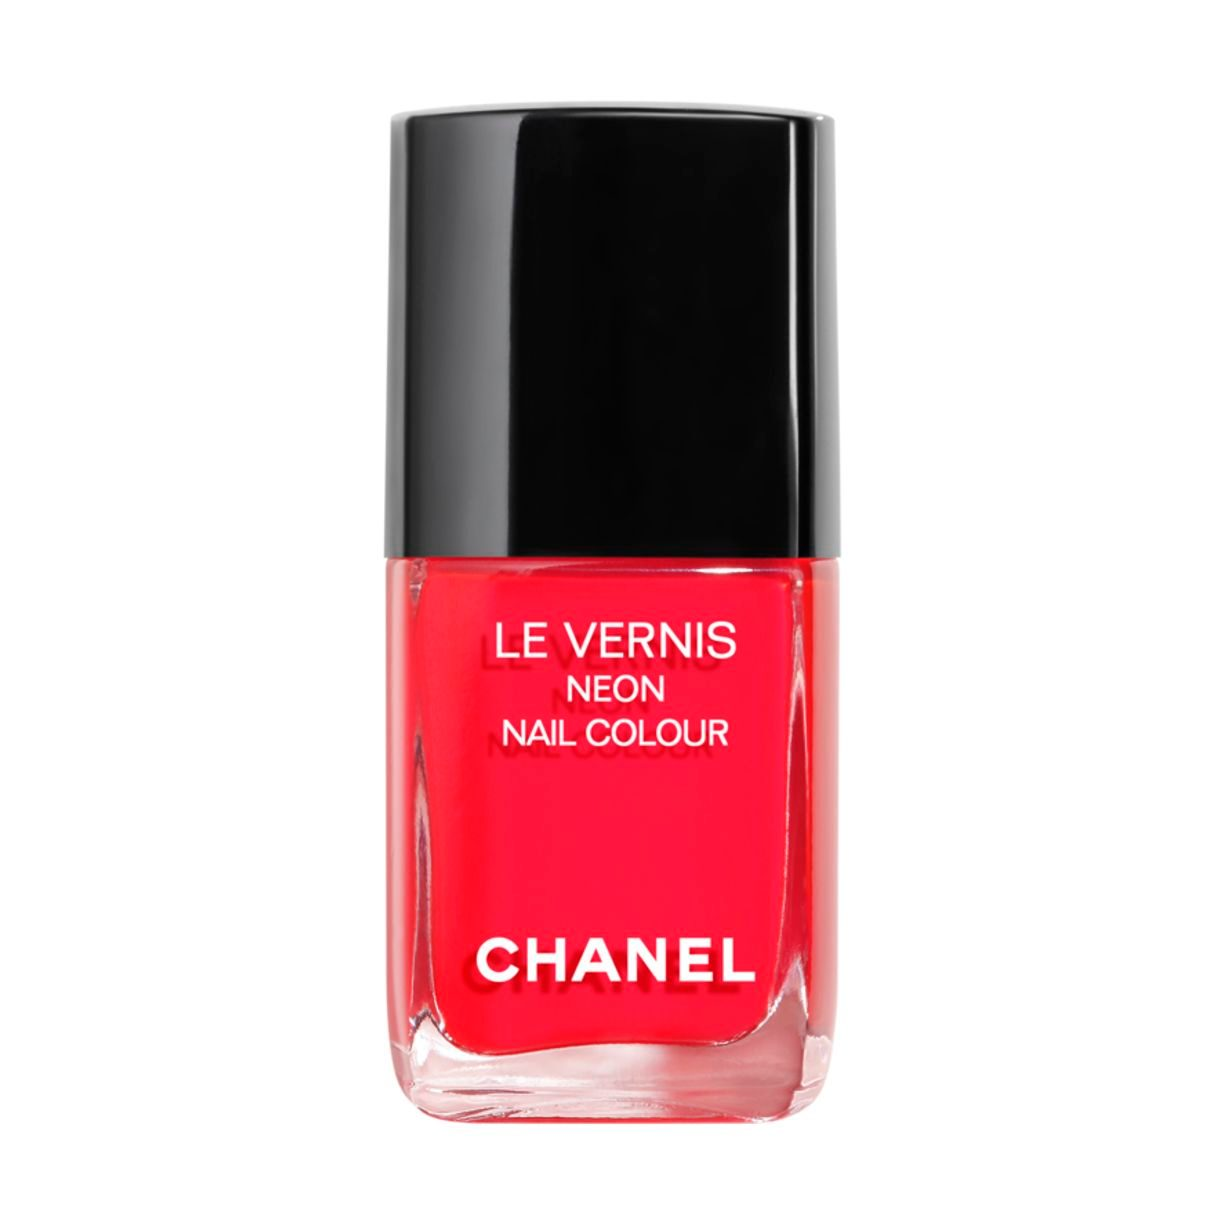 LE VERNIS NEON NAIL COLOUR SMALTO NEON